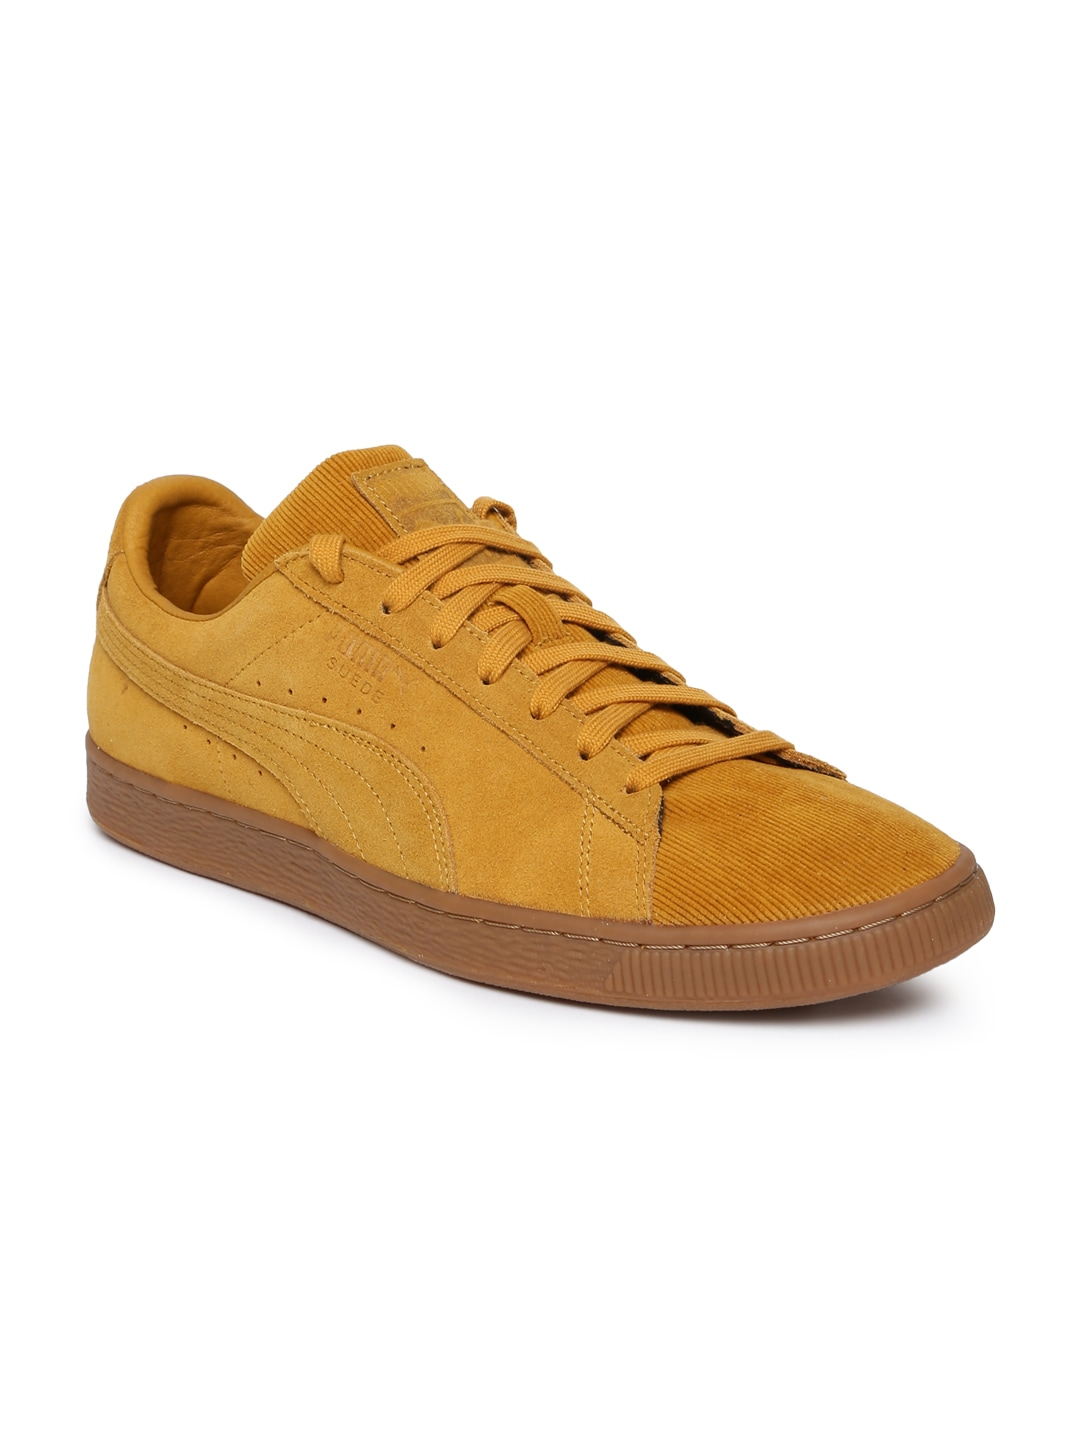 hot sales dfa53 c8b17 Puma Men Brown Suede Classic Pincord Sneakers